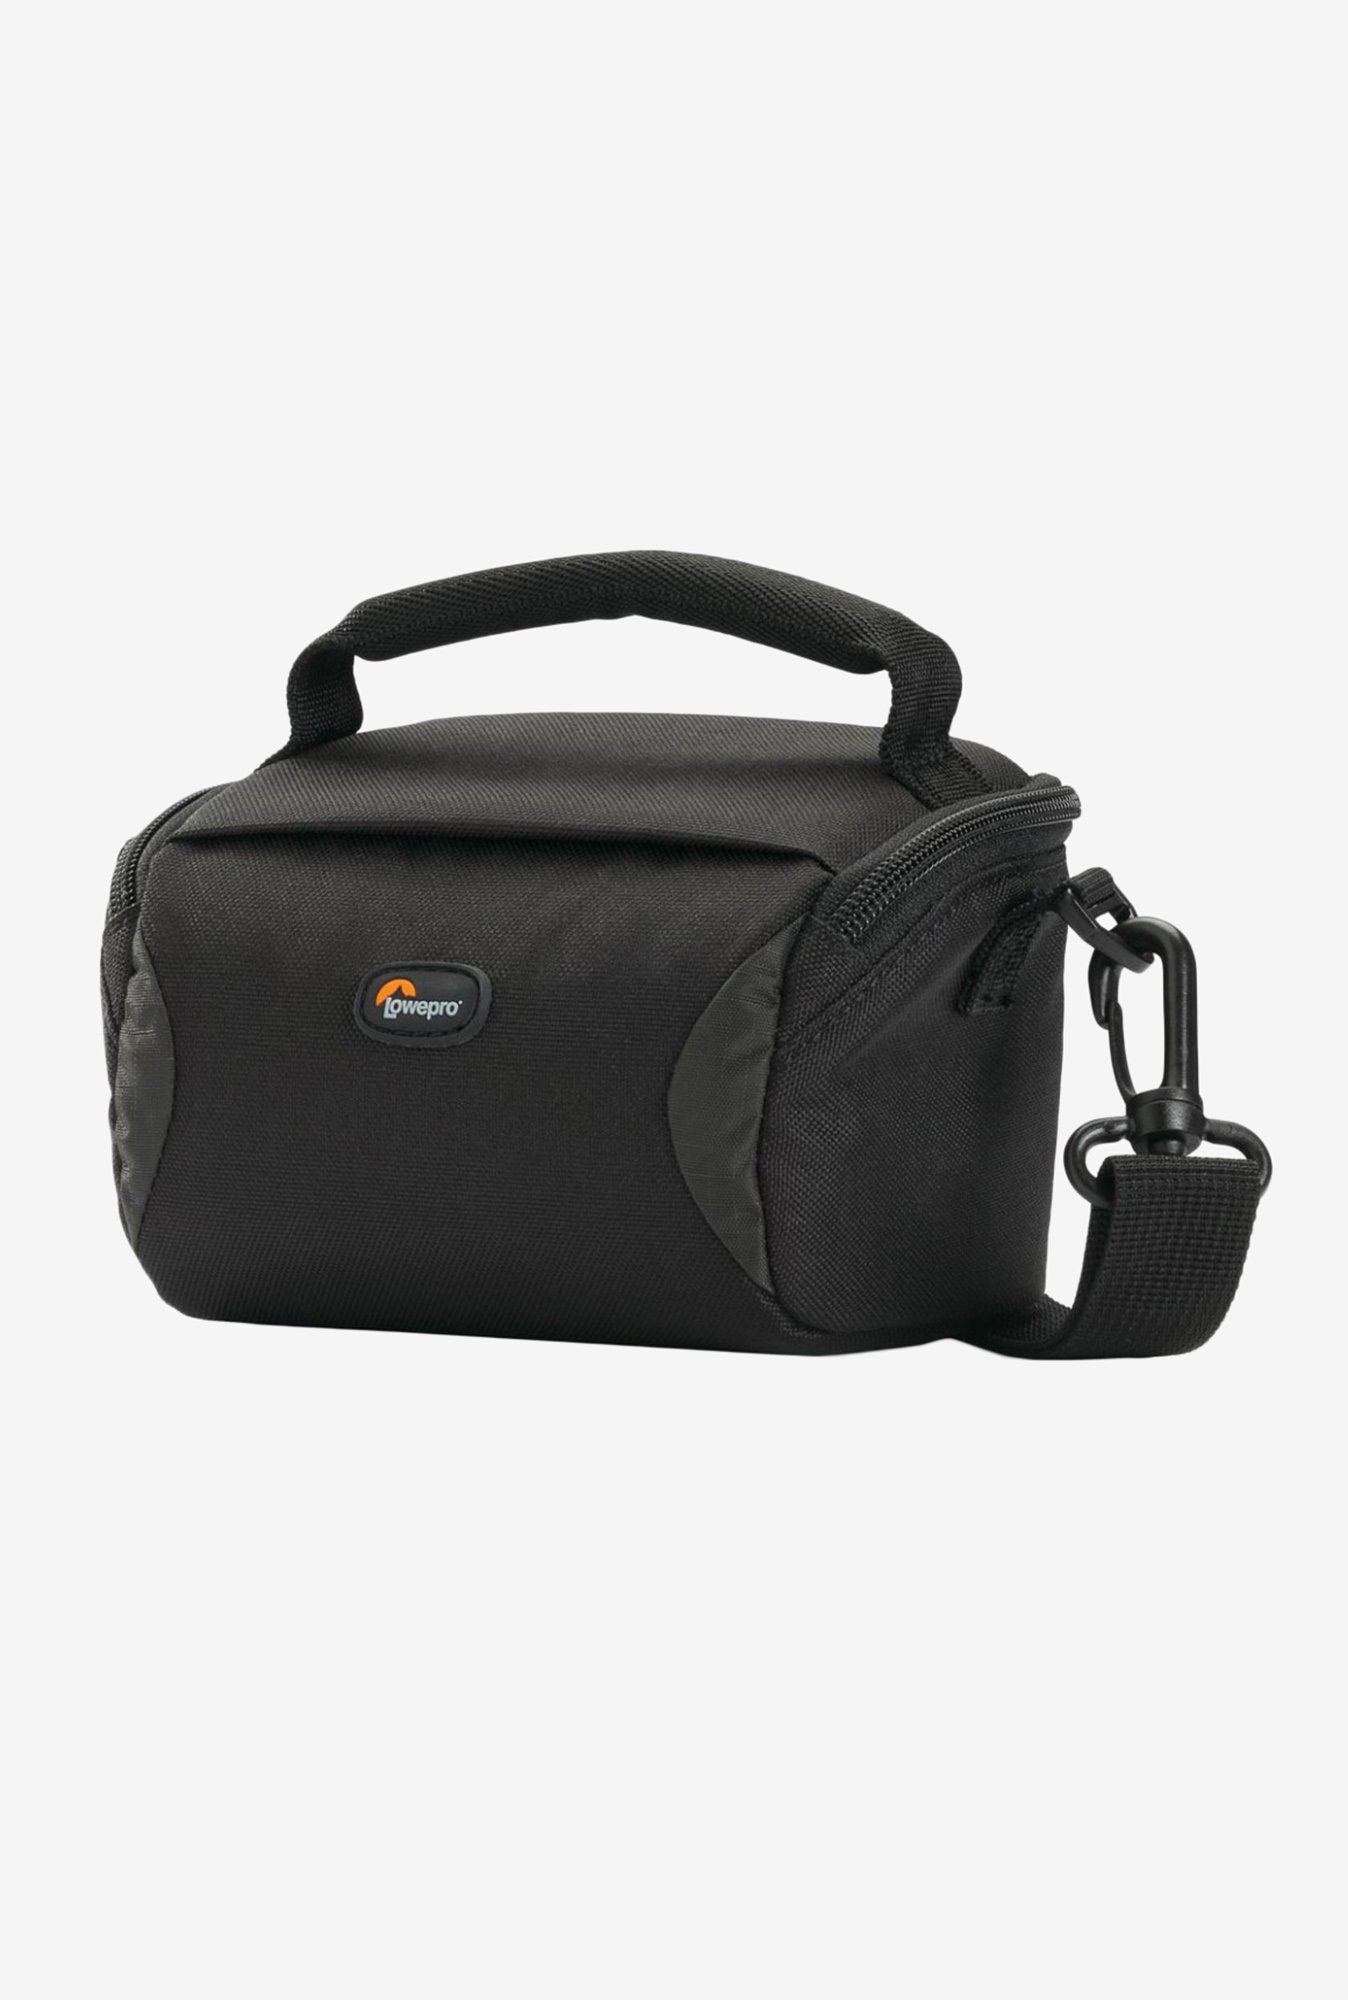 Lowepro Format 100 Camera Bag Black